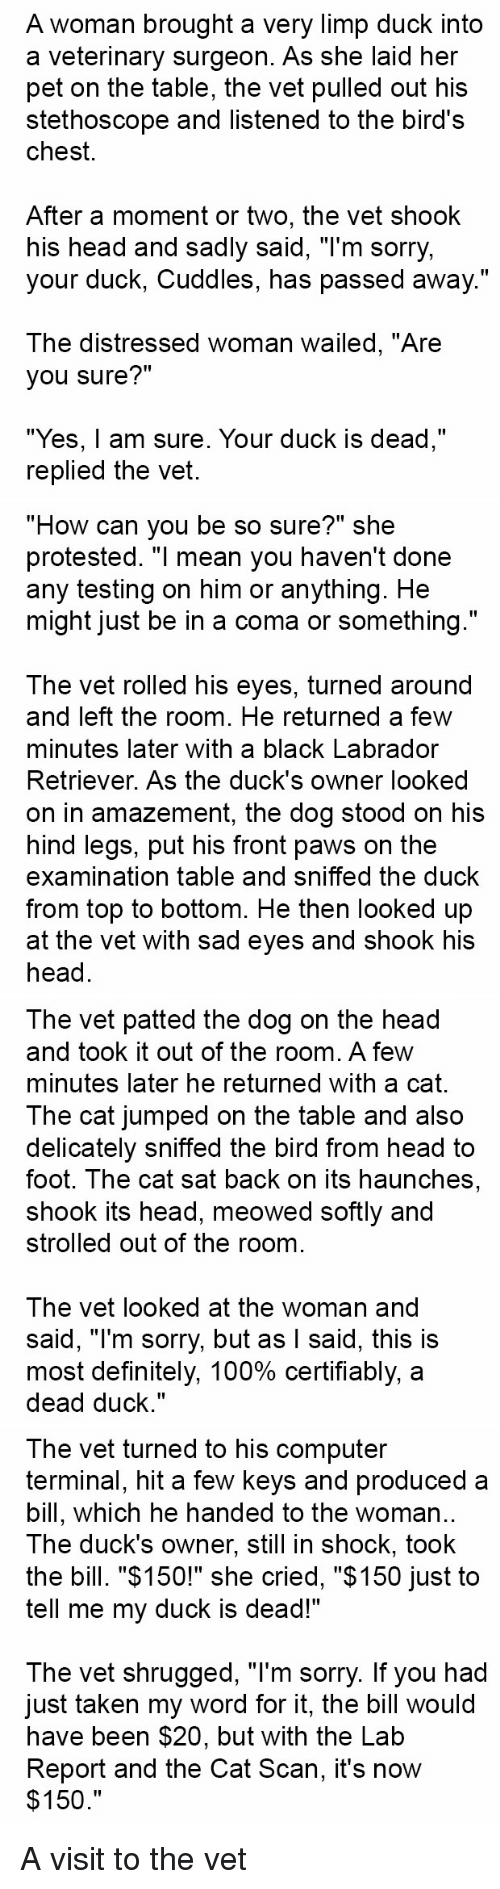 "sad eyes: A woman brought a very limp duck into  a veterinary surgeon. As she laid her  pet on the table, the vet pulled out his  stethoscope and listened to the bird's  chest.  After a moment or two, the vet shook  his head and sadly said, ""I'm sorry,  your duck, Cuddles, has passed away.""  The distressed woman wailed, ""Are  you sure?""  ""Yes, am sure. Your duck is dead,""  replied the vet.   ""How can you be so sure?"" she  protested. ""I mean you haven't done  any testing on him or anything. He  might just be in a coma or something.""  The vet rolled his eyes, turned around  and left the room. He returned a few  minutes later with a black Labrador  Retriever. As the duck's owner looked  on in amazement, the dog stood on his  hind legs, put his front paws on the  examination table and sniffed the duck  from top to bottom. He then looked up  at the vet with sad eyes and shook his  head   The vet patted the dog on the head  and took it out of the room. A few  minutes later he returned with a cat.  The cat jumped on the table and also  delicately sniffed the bird from head to  foot. The cat sat back on its haunches  shook its head, meowed softly and  strolled out of the room  The vet looked at the woman and  said, ""I'm sorry, but as I said, this is  most definitely, 100% certifiably, a  dead duck.""   The vet turned to his computer  terminal, hit a few keys and produced a  bill, which he handed to the woman  The duck's owner, still in shock, took  the bill. ""$150!"" she cried, ""$150 just to  tell me my duck is dead!""  The vet shrugged, ""l'm sorry. If you had  Just taken my word for it, the bill Would  have been $20, but with the Lab  Report and the Cat Scan, it's now  $150 A visit to the vet"